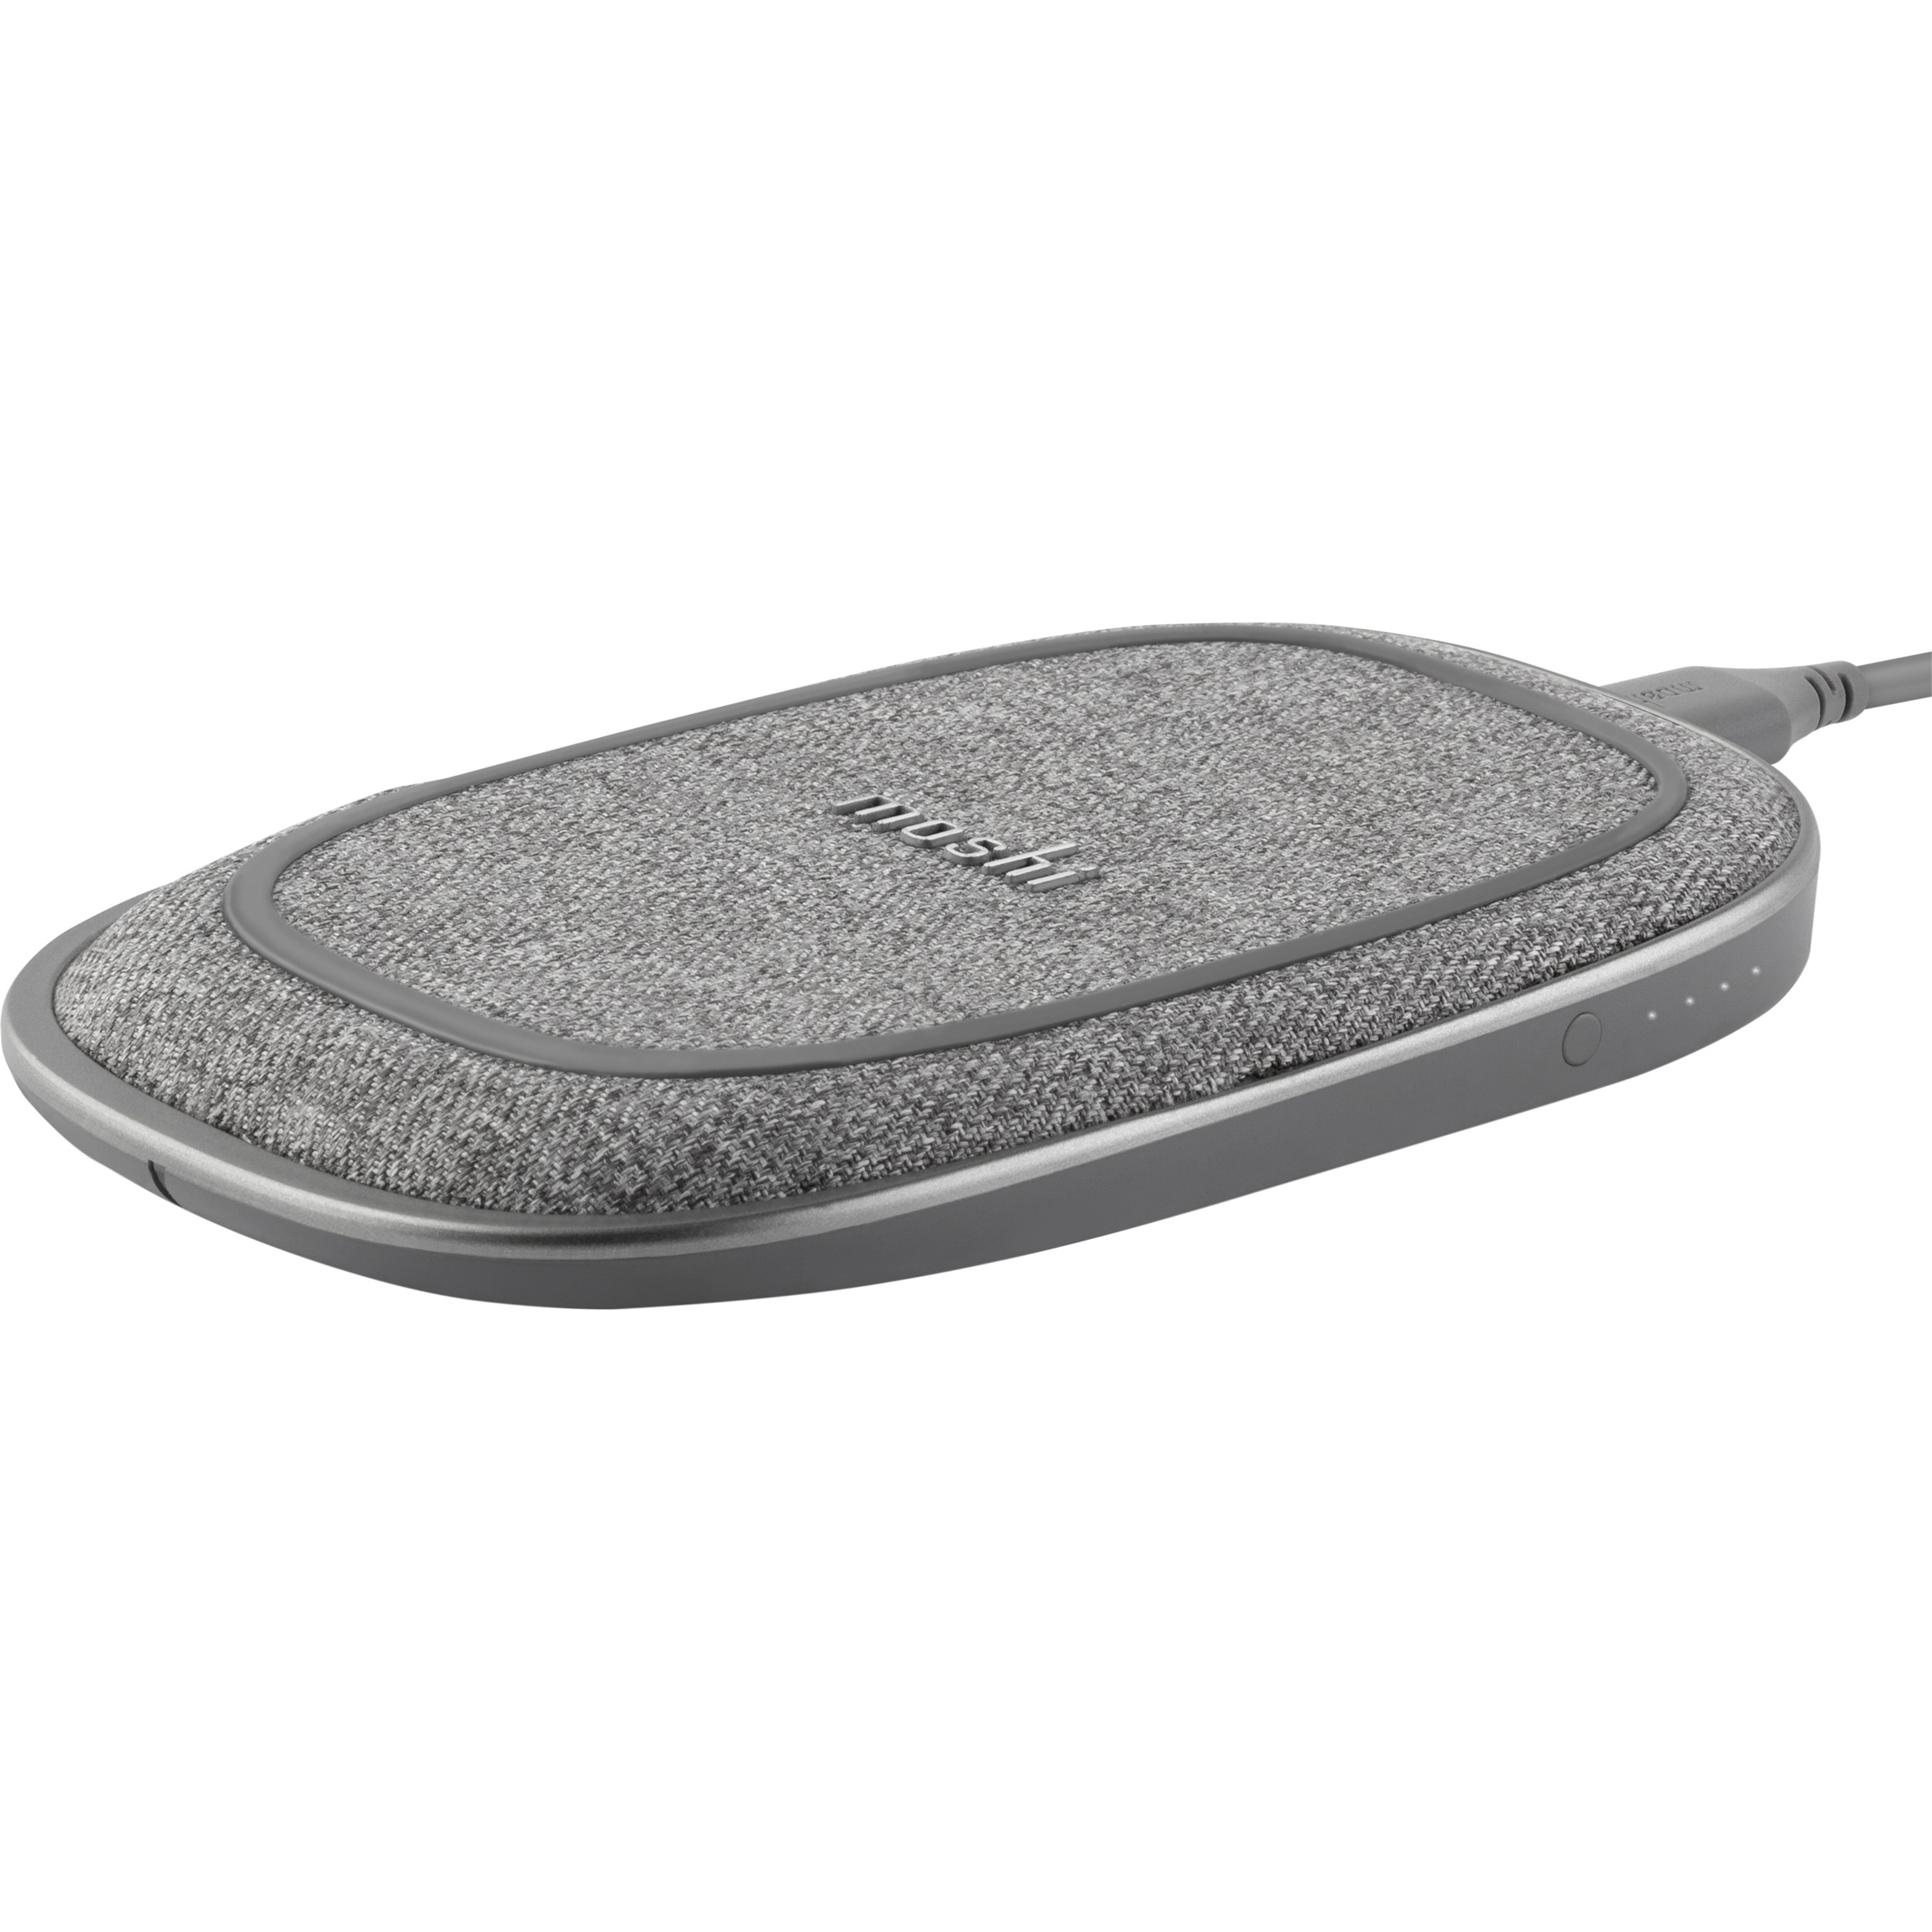 Porto Q Portable Battery with Wireless Charger